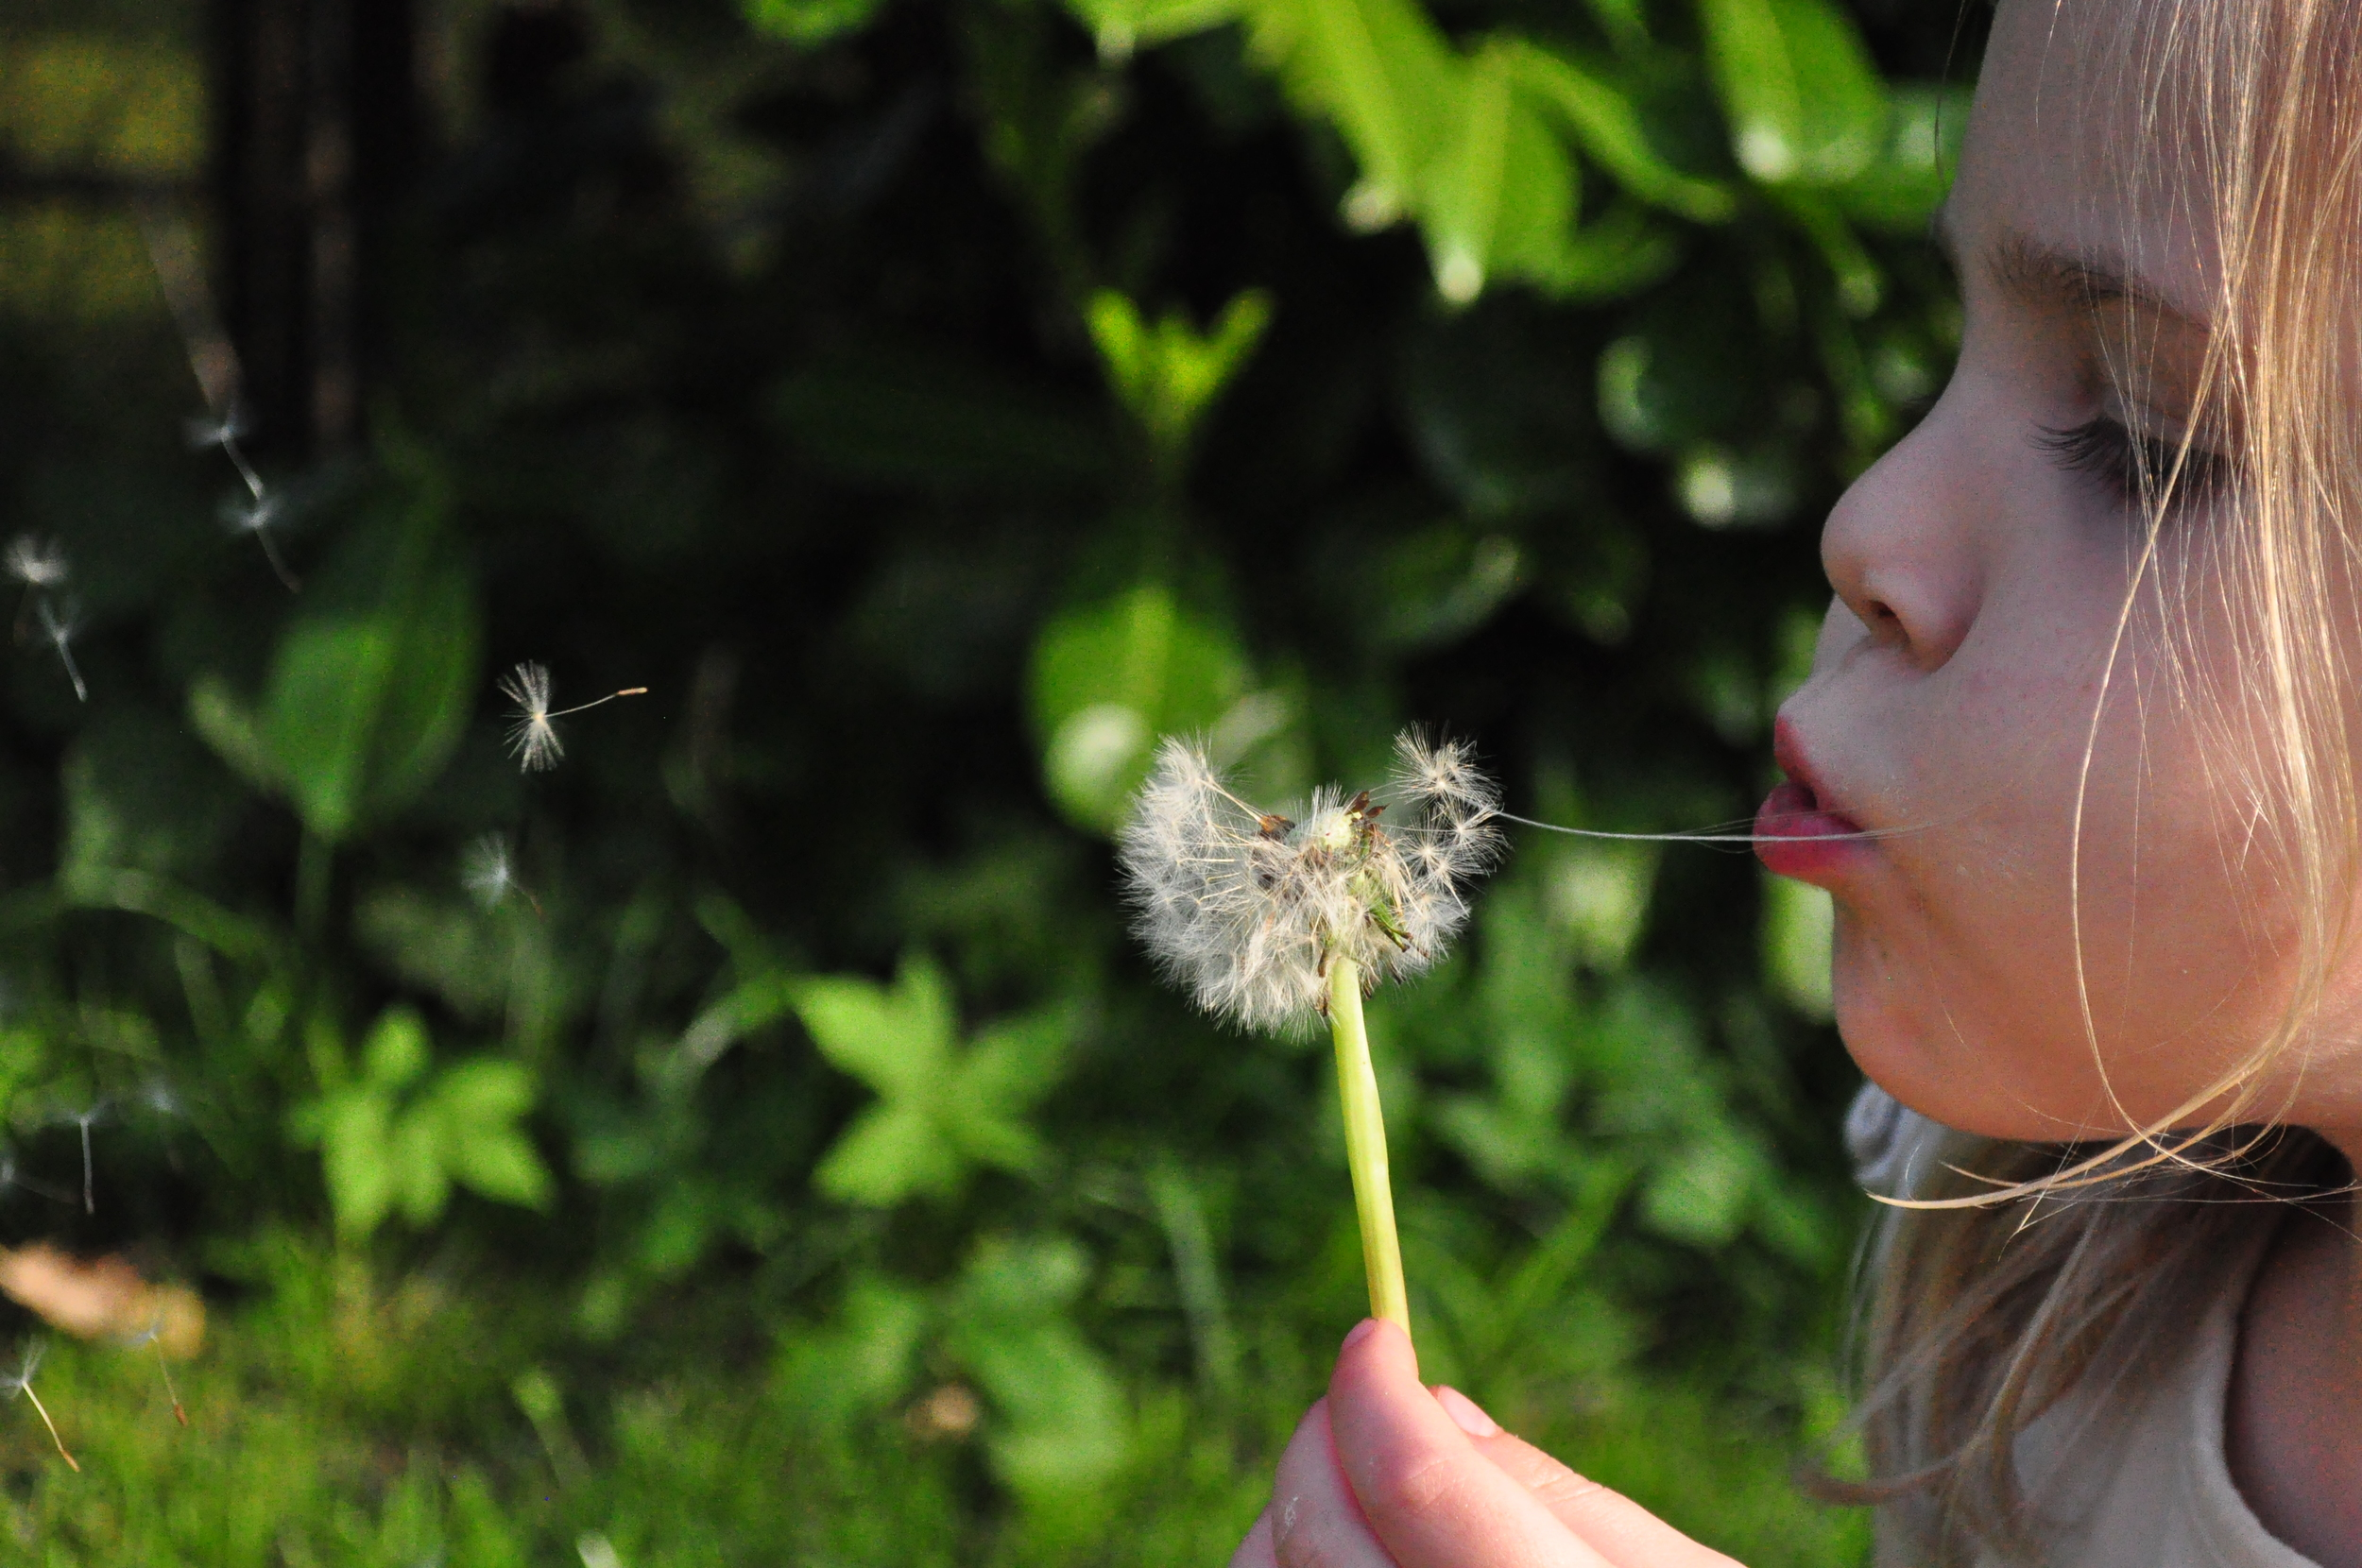 blowing-child-dandelion-790.jpg